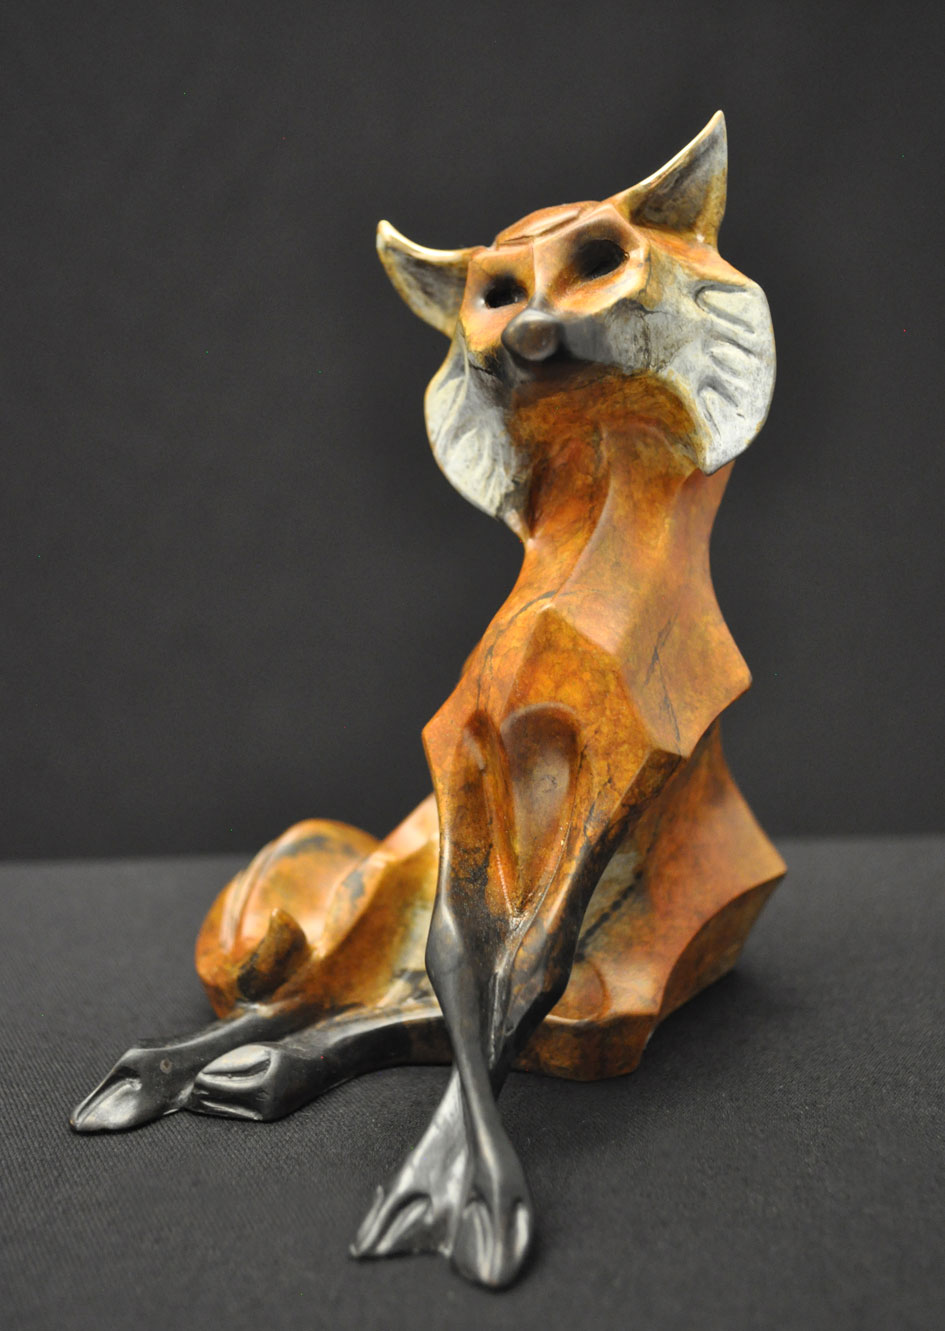 bronze-fox-sculpture-john-maisano---roxys-man-17.jpg